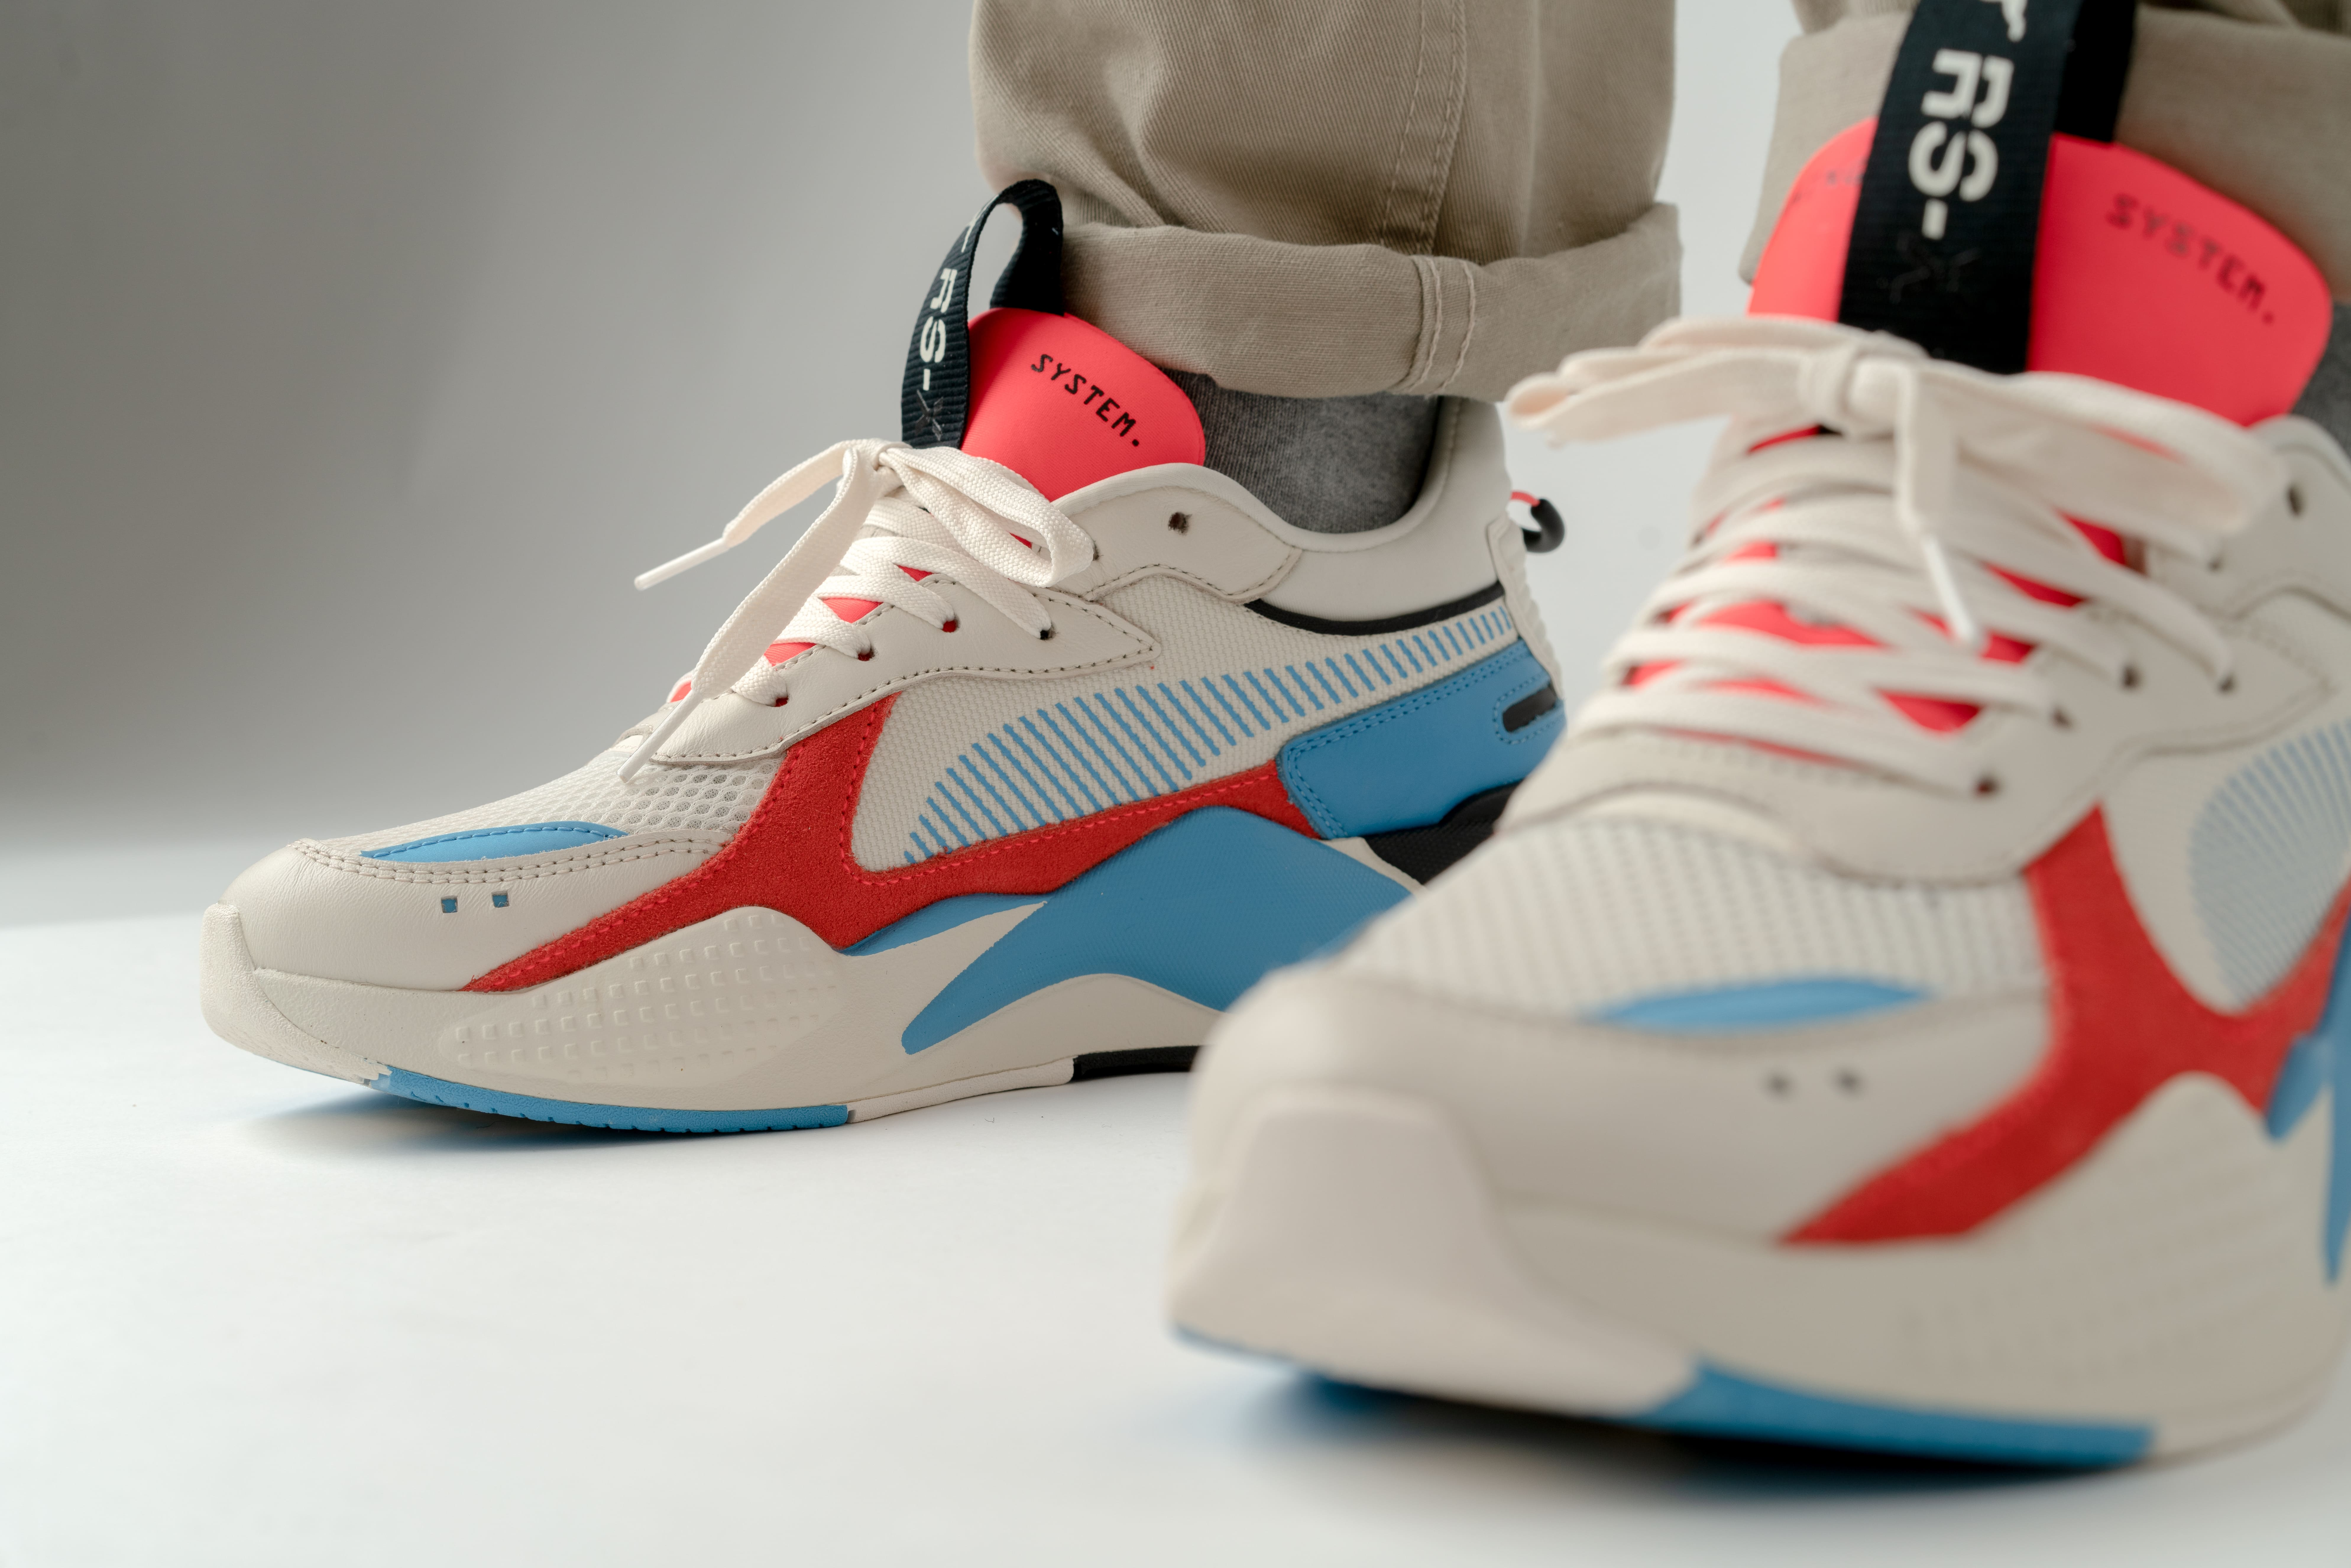 PUMA RS X REINVENTION REVIEW + ON FEET & SIZING